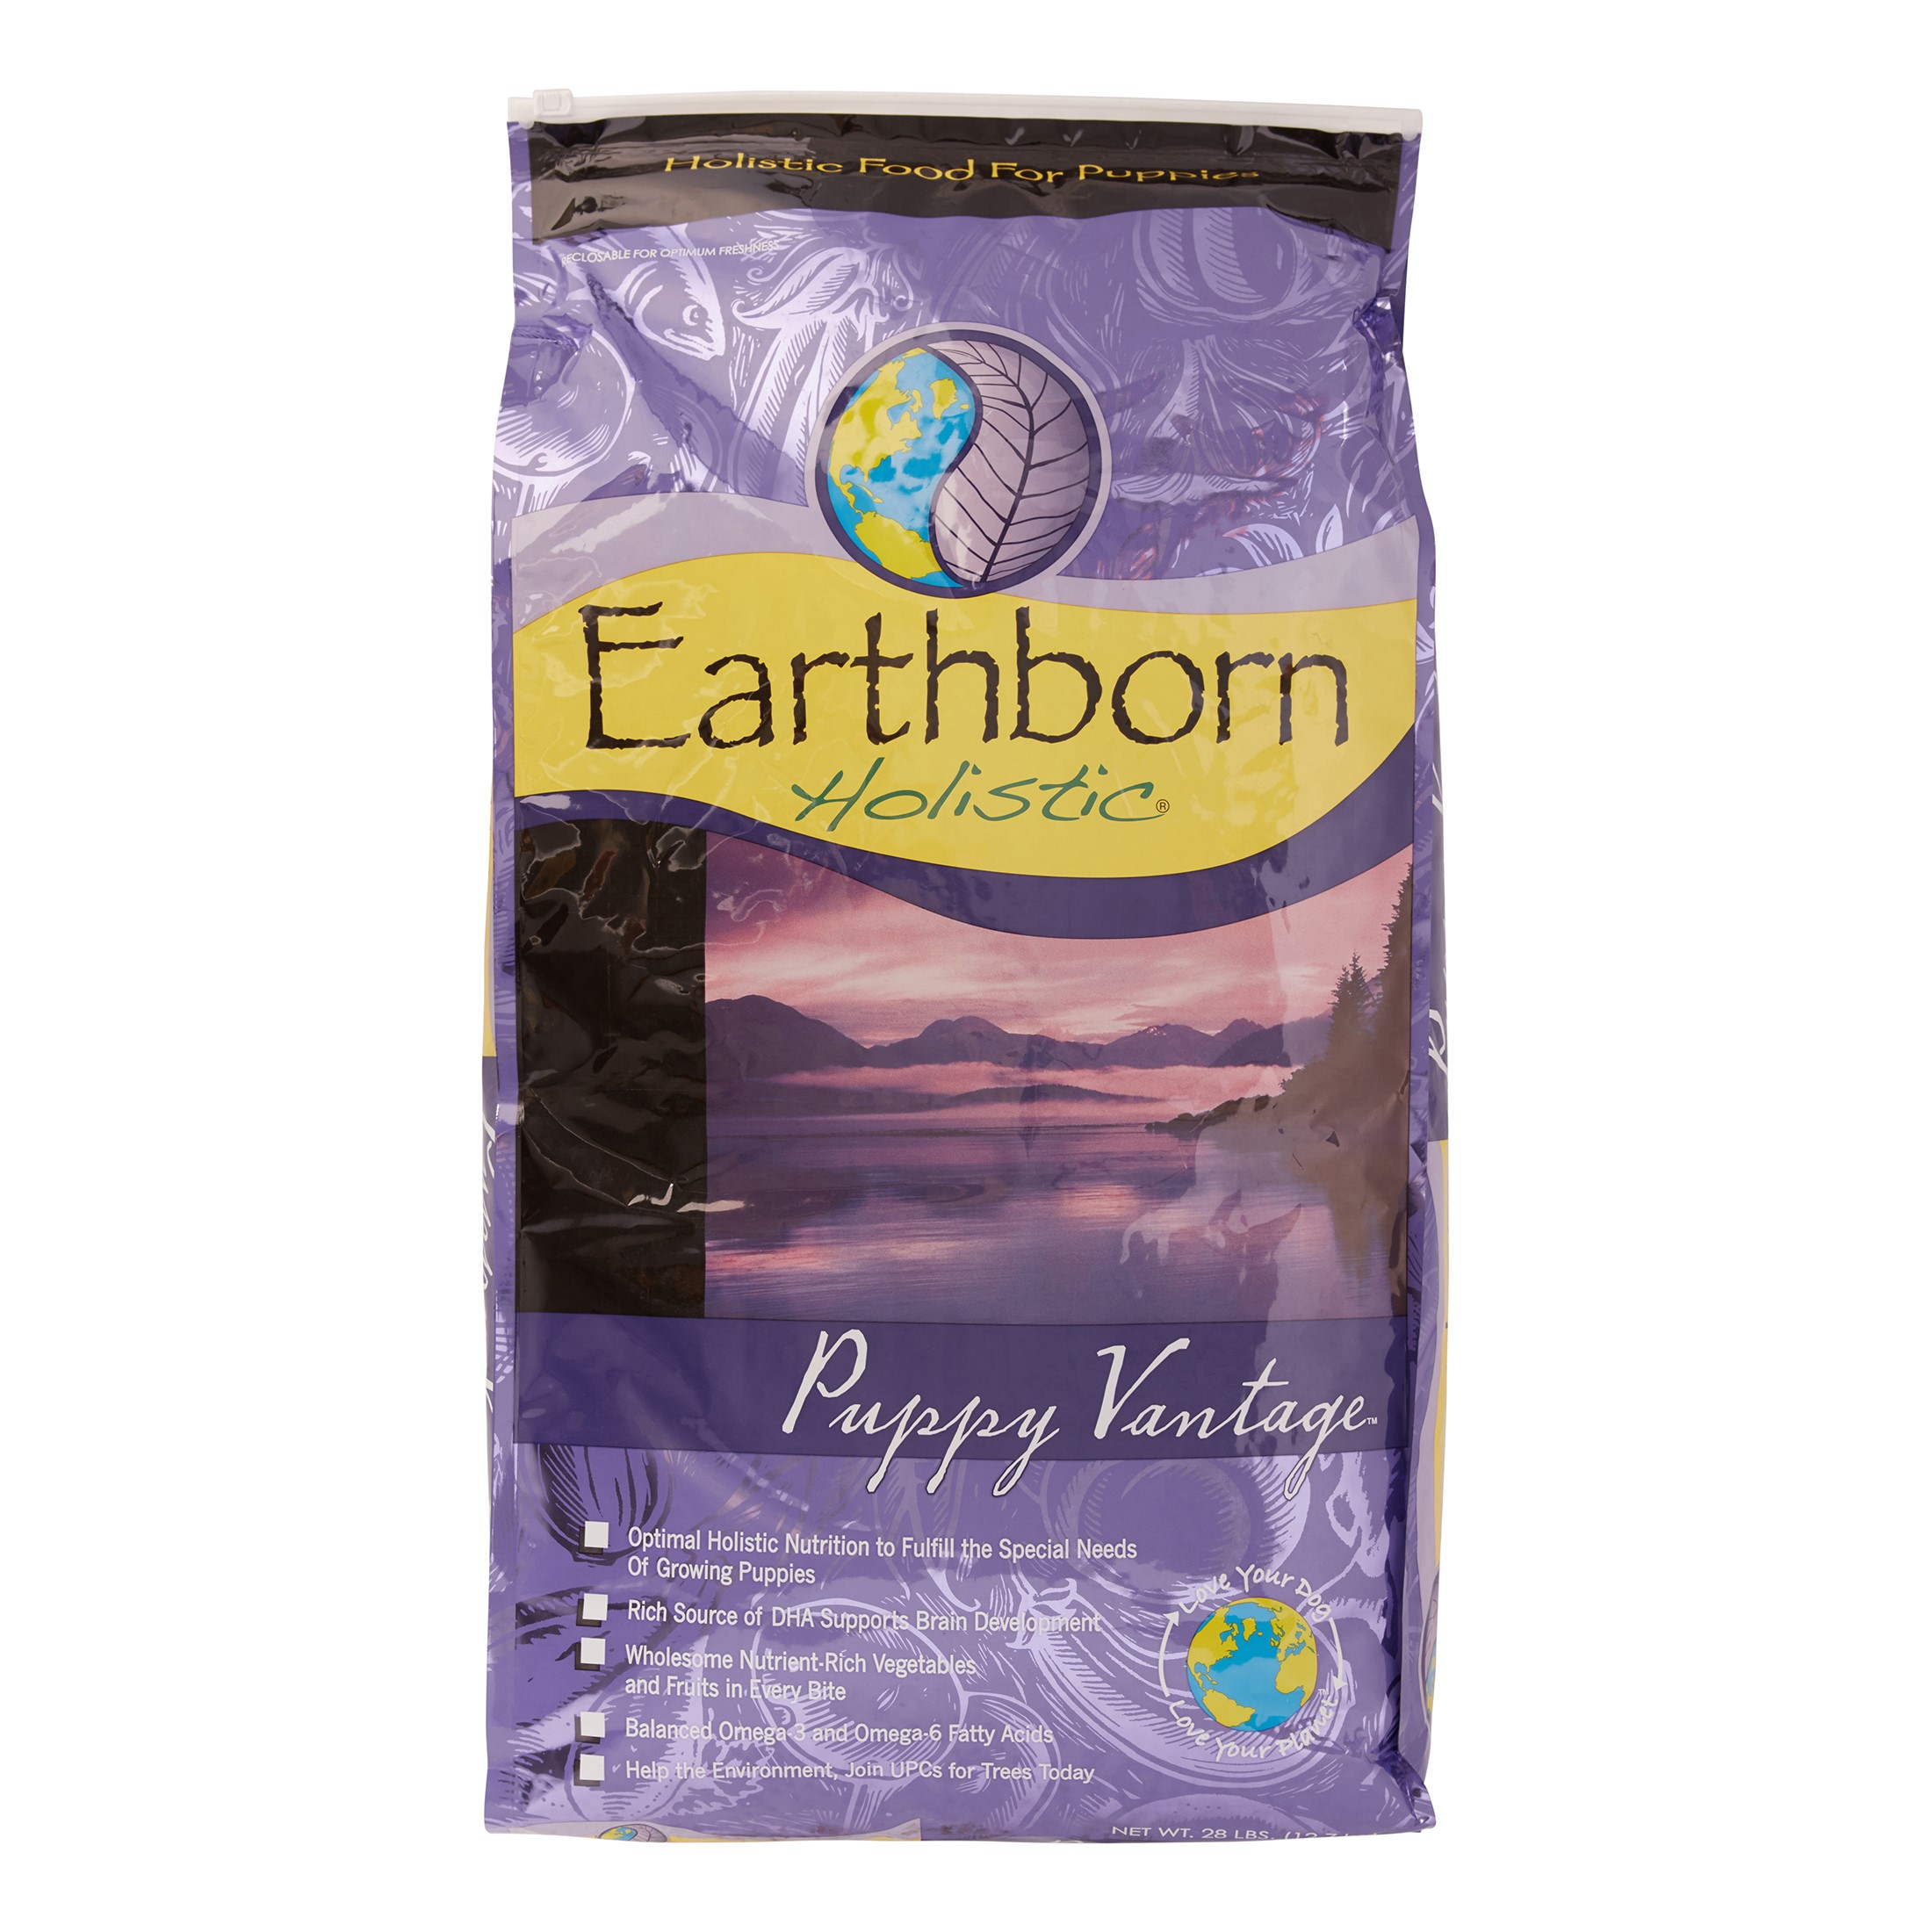 Earthborn Holistic Puppy Vantage Dry Dog Food, 28 lb